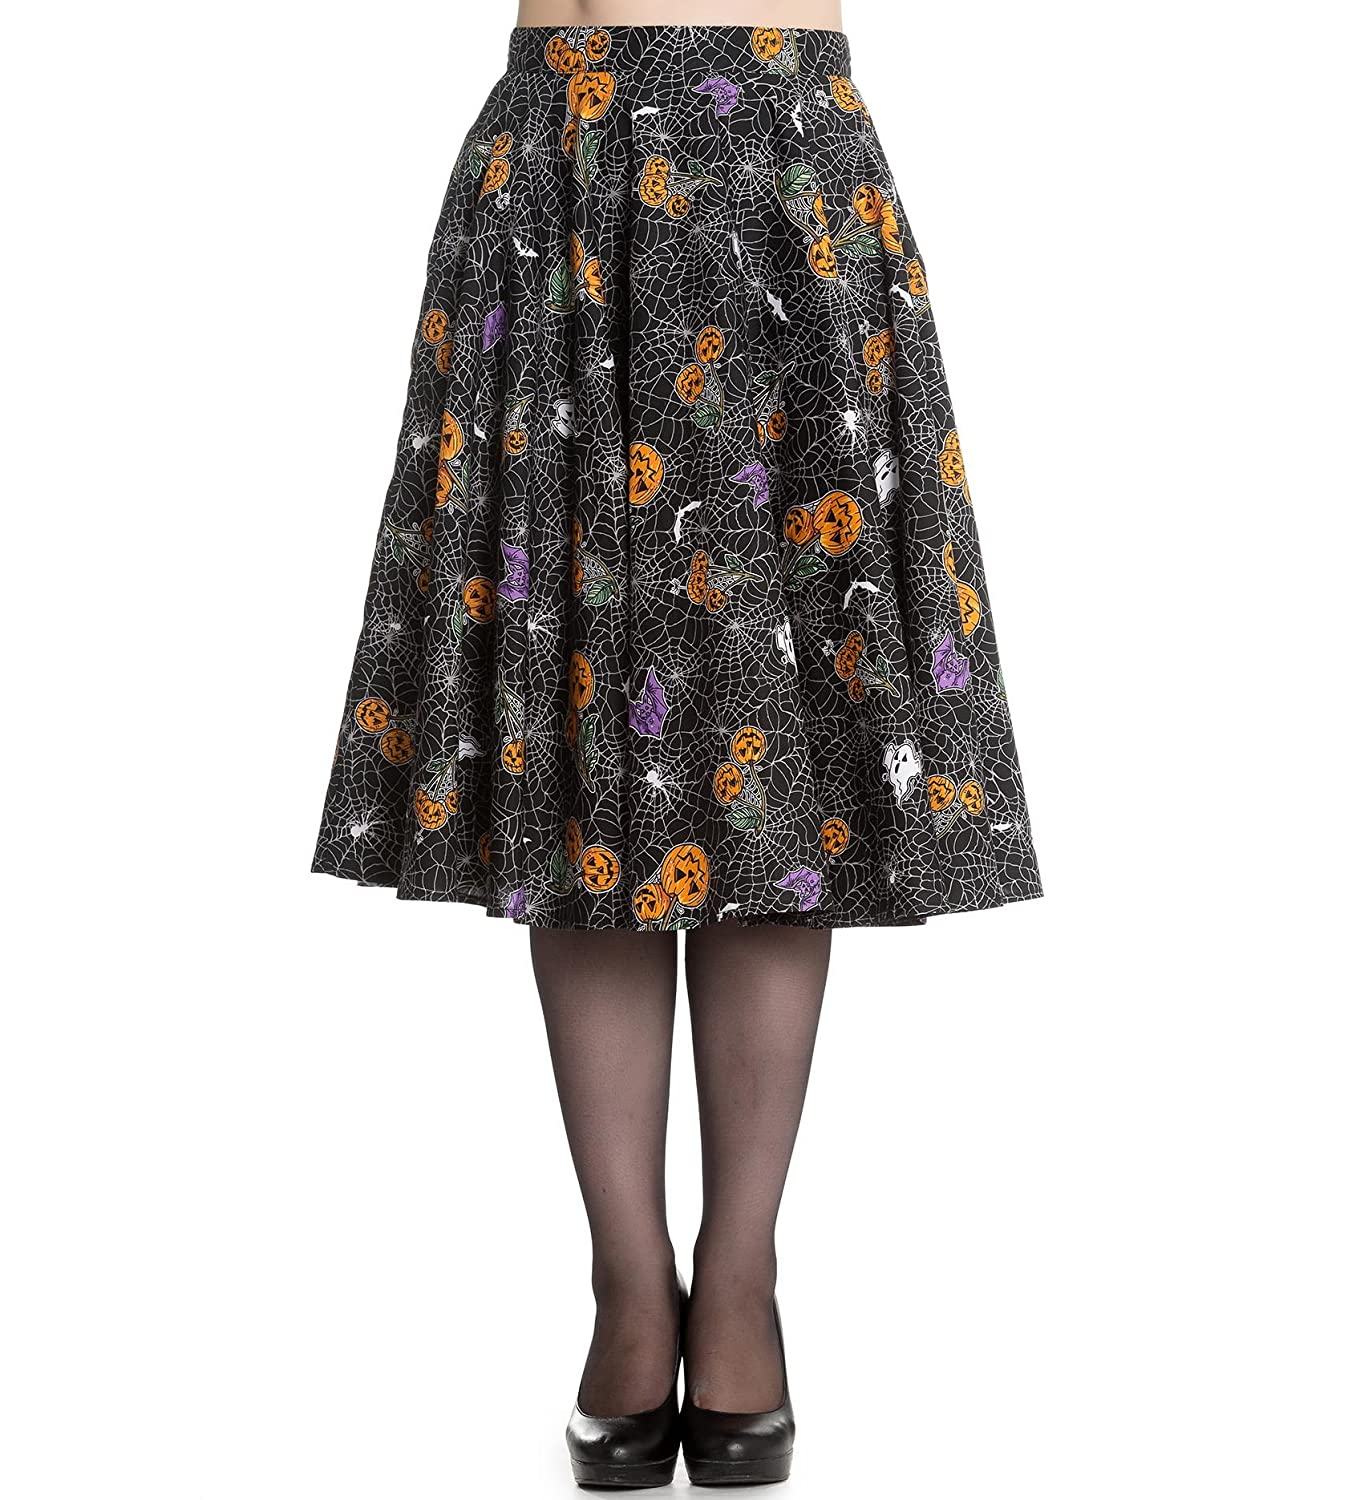 Vintage Inspired Dresses & Clothing UK Hell Bunny Goth Webs Pumpkins 50s Skirt Harlow Halloween Bats £11.90 AT vintagedancer.com